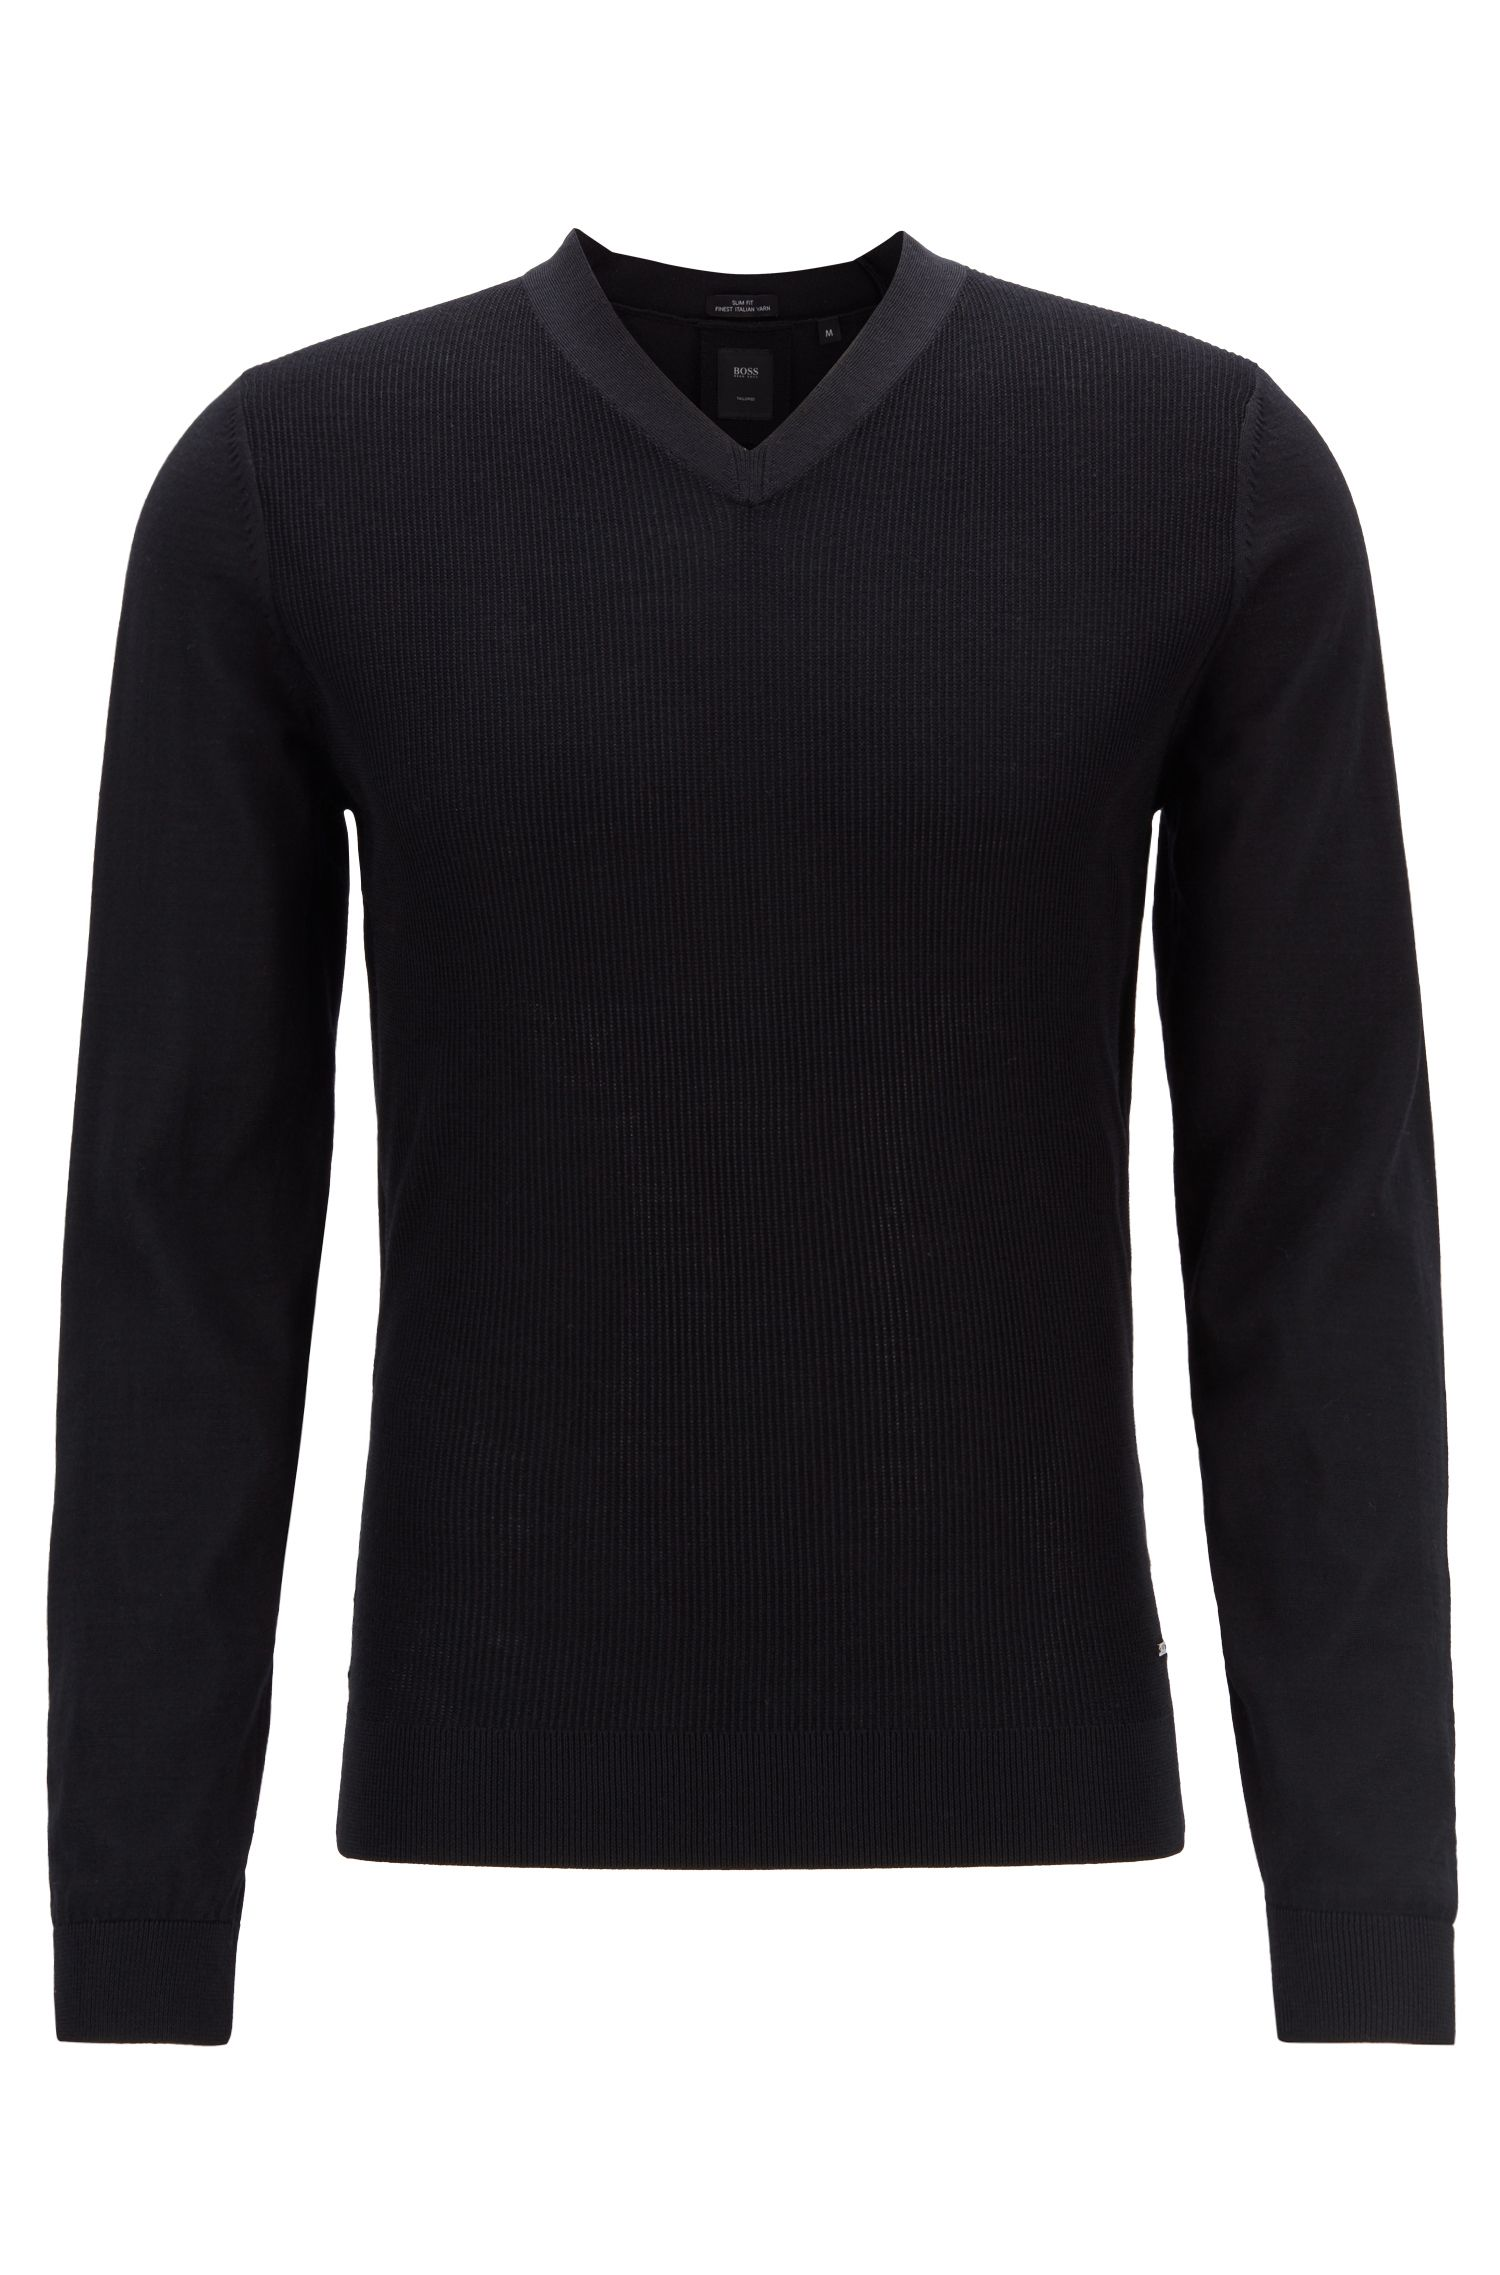 V-neck sweater in a virgin-wool blend with micro-structure, Black